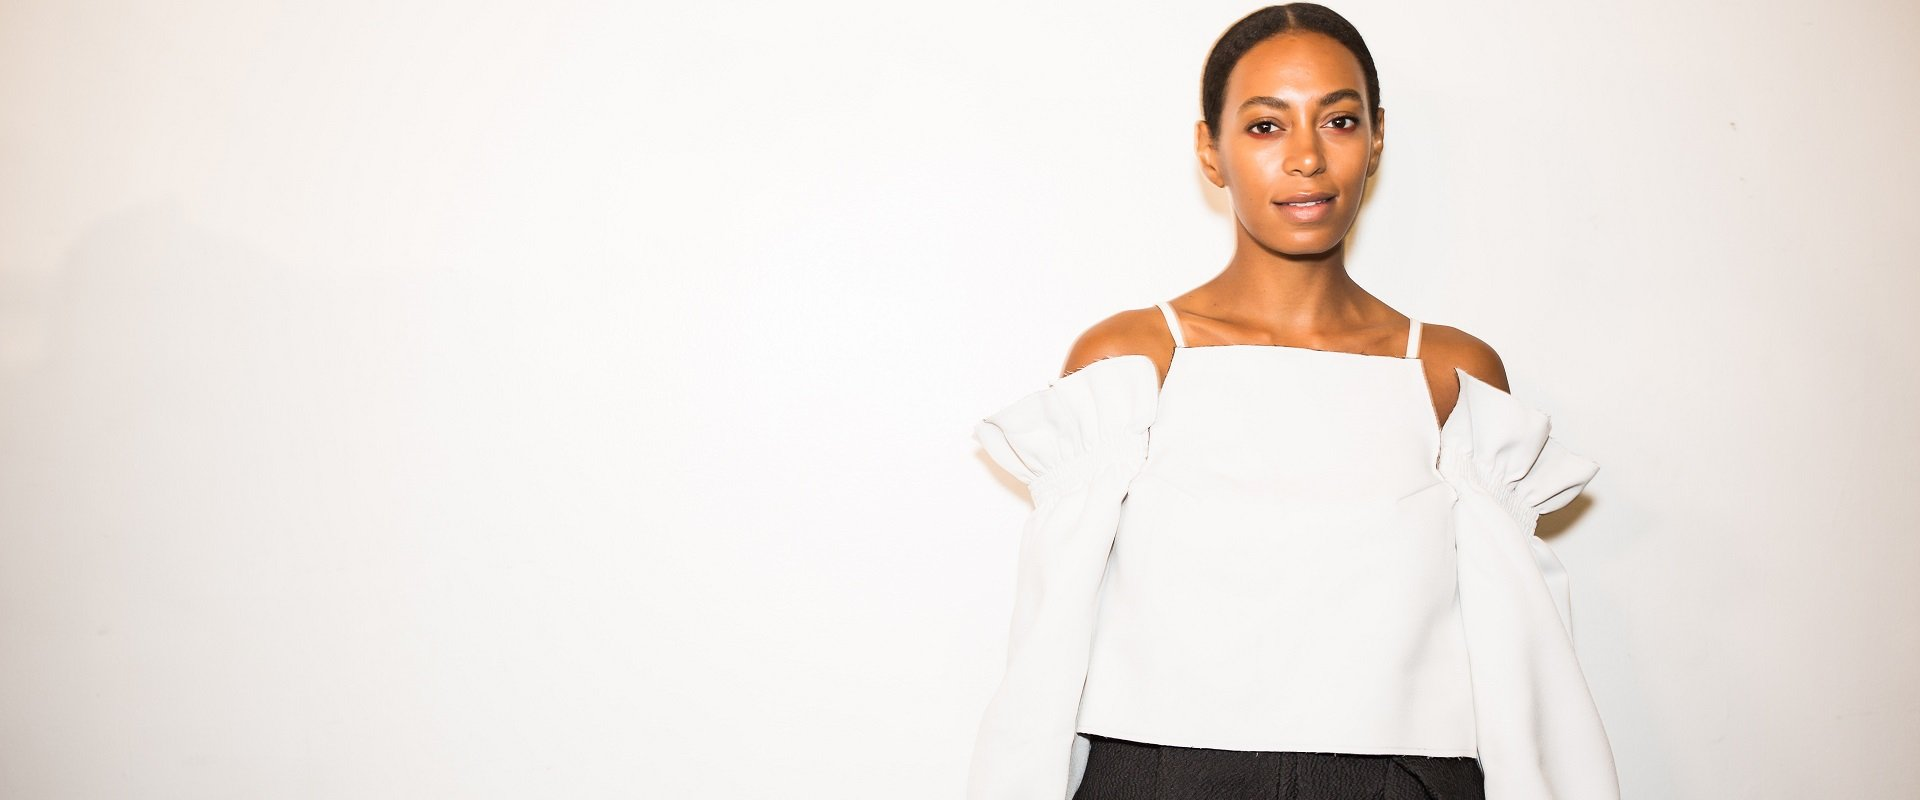 SOLANGE KNOWLES' SAINT HERON AT A GREAT TIME